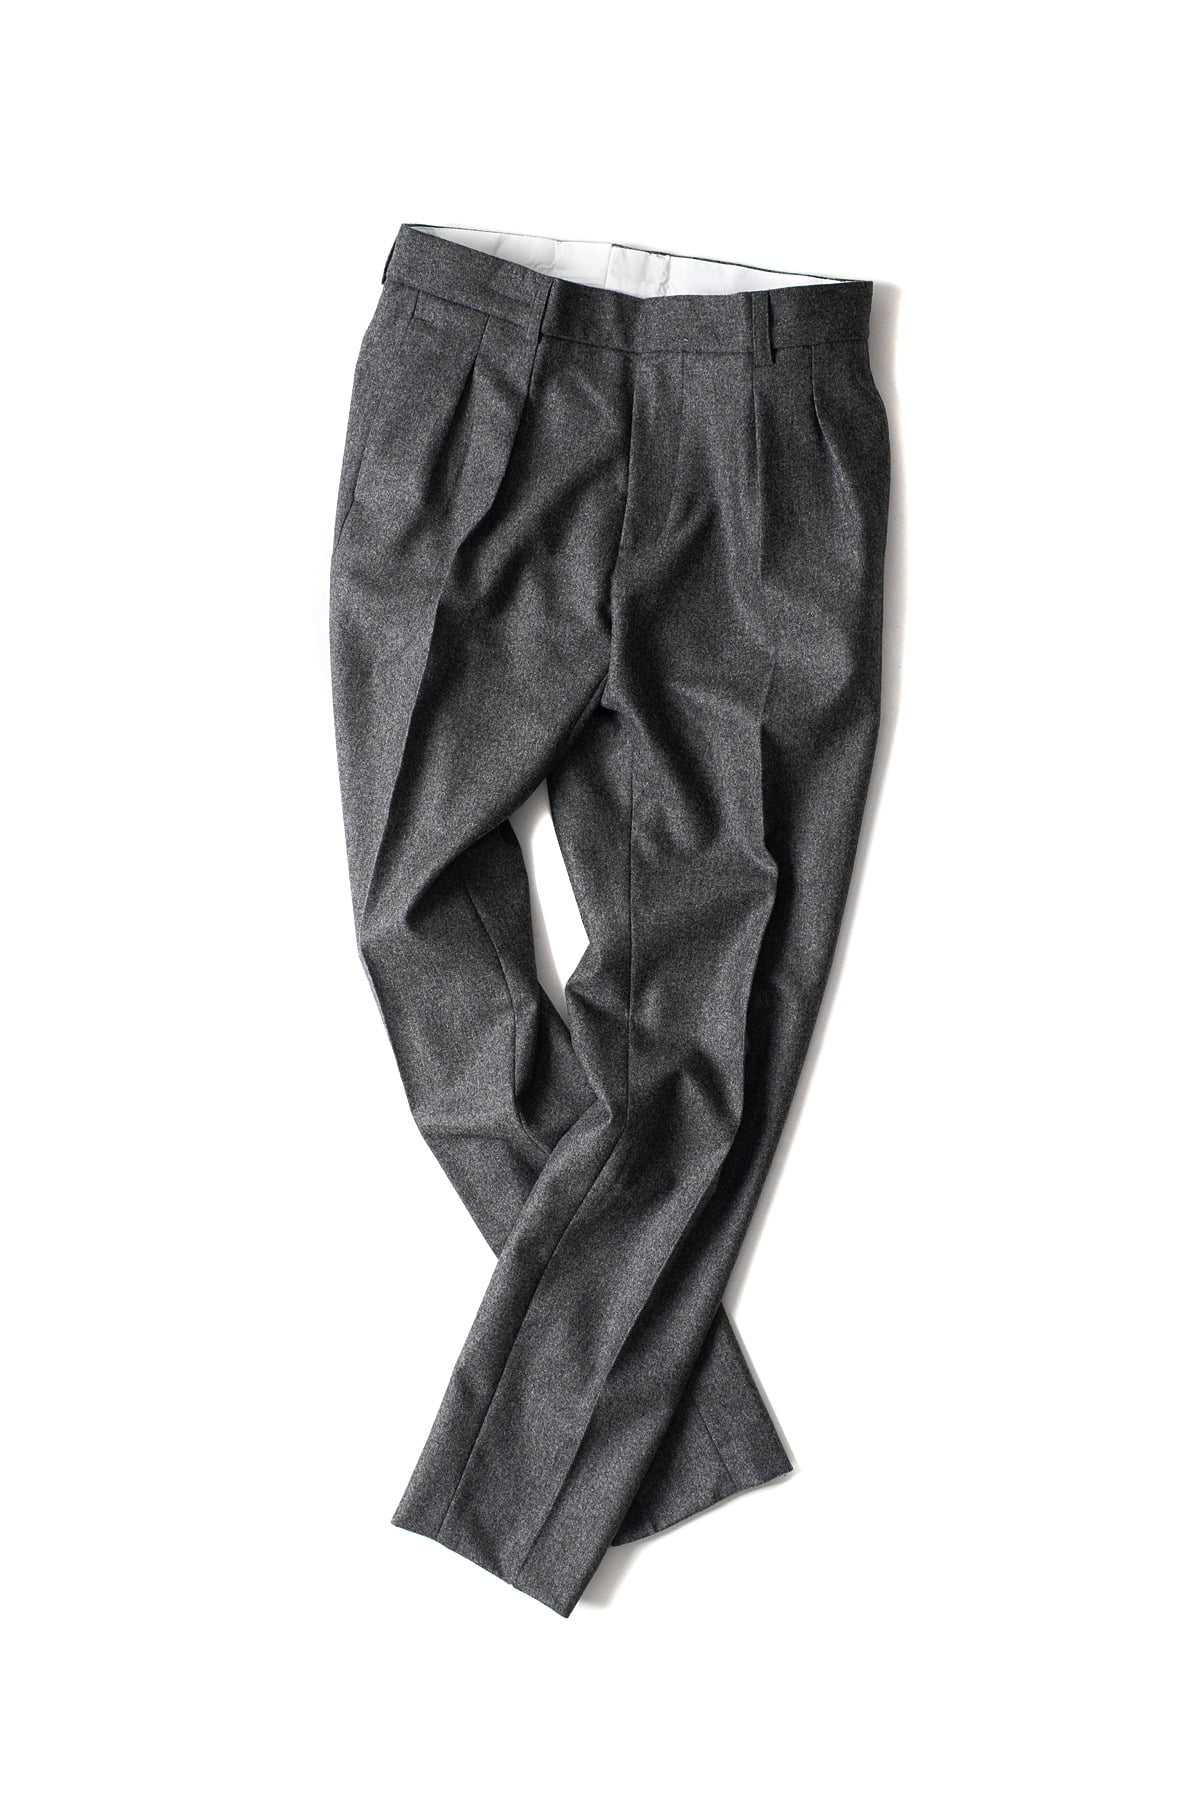 HARMONY : Trouser Patt (Grey)